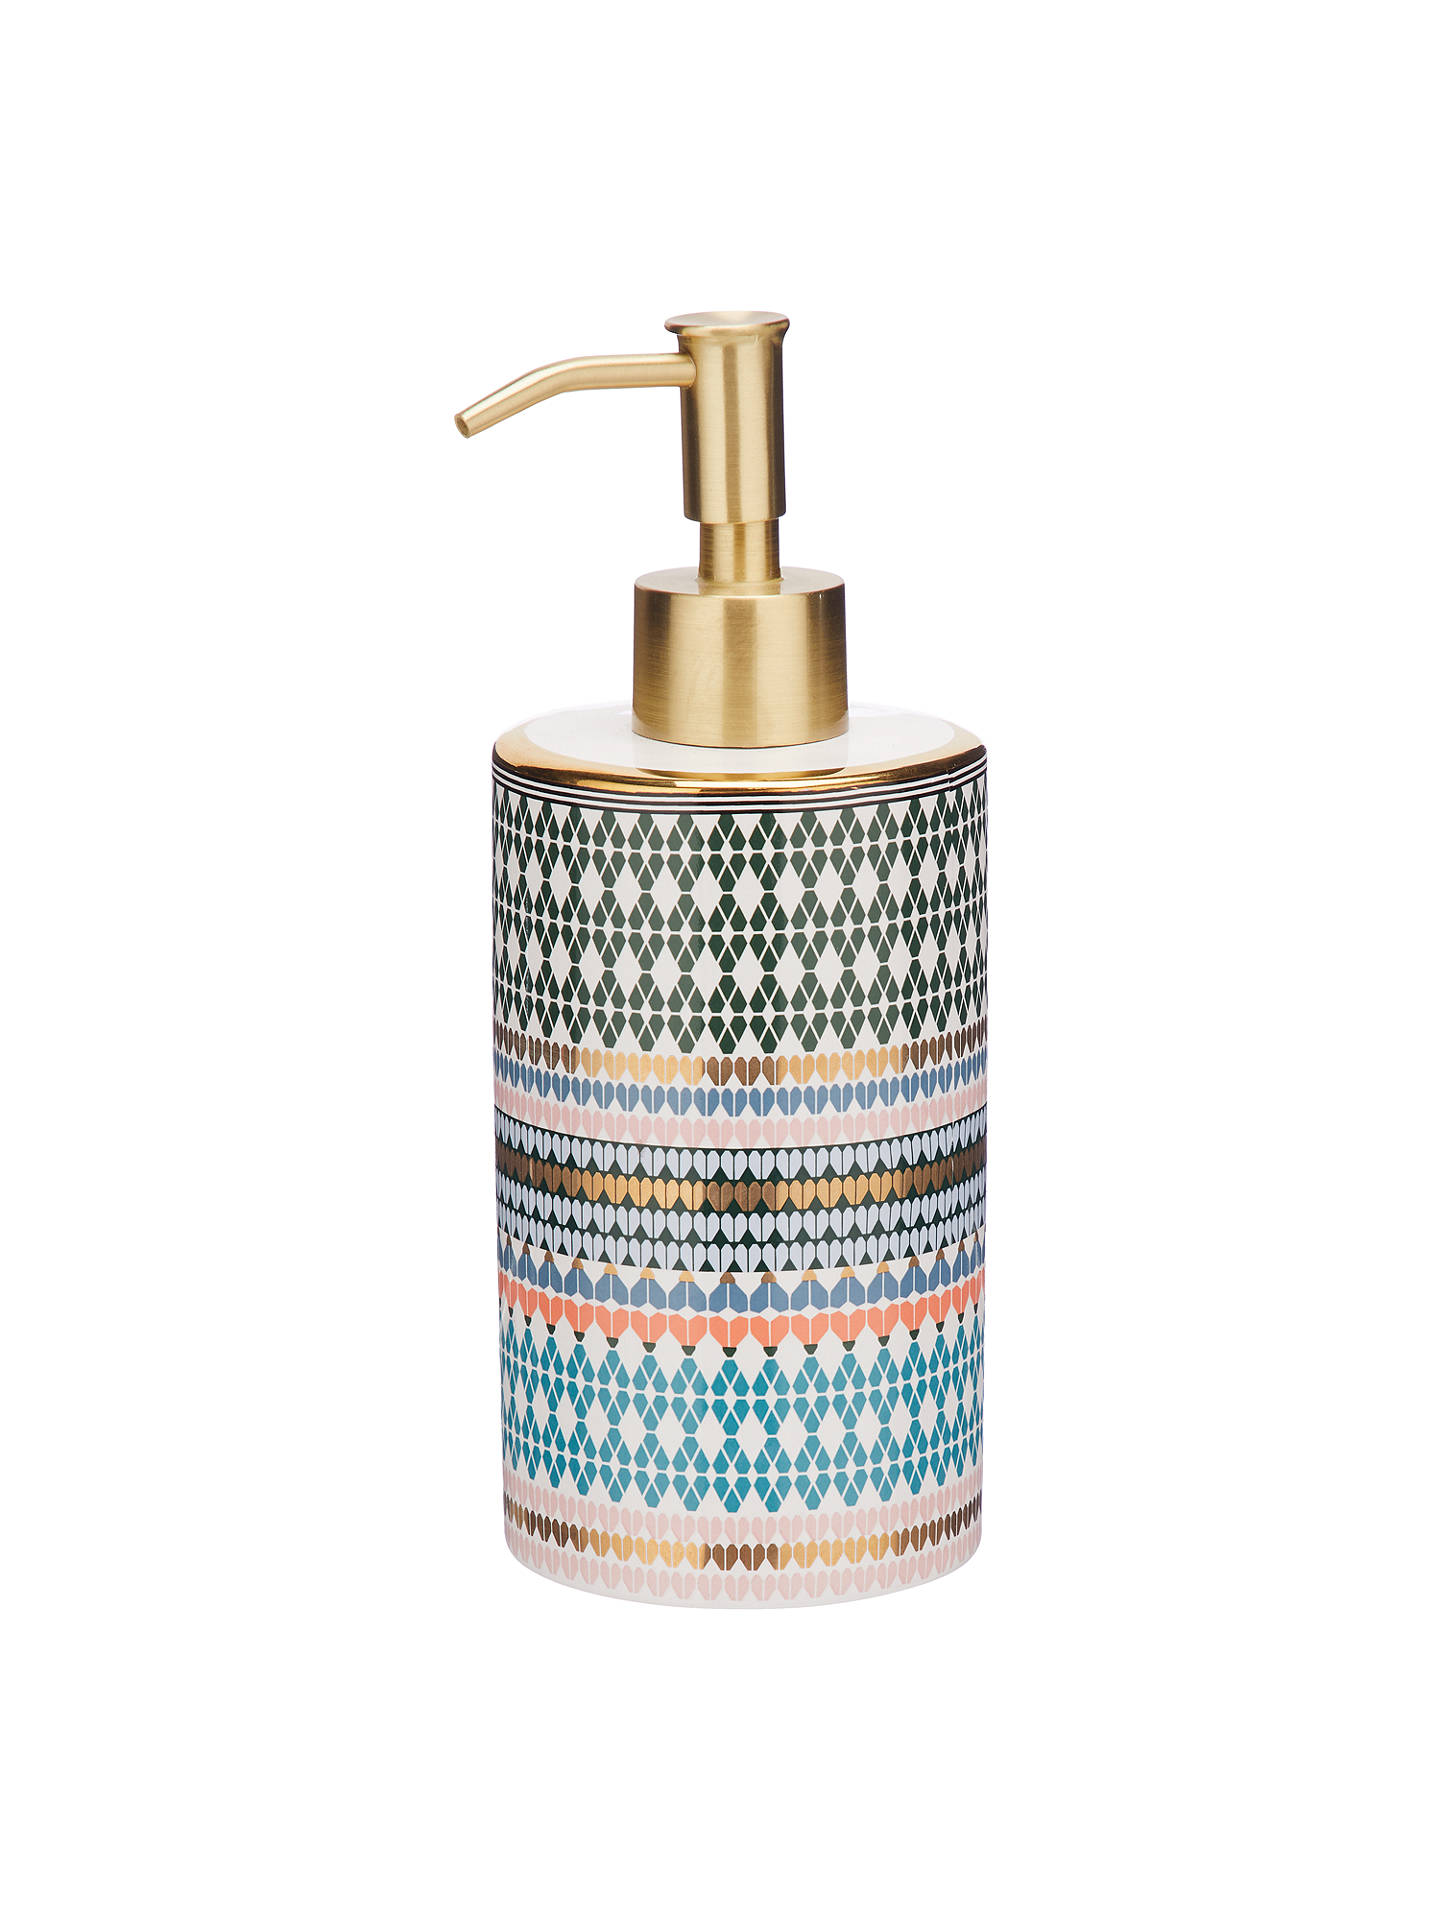 Buy Margo Selby Soap Pump Online at johnlewis.com